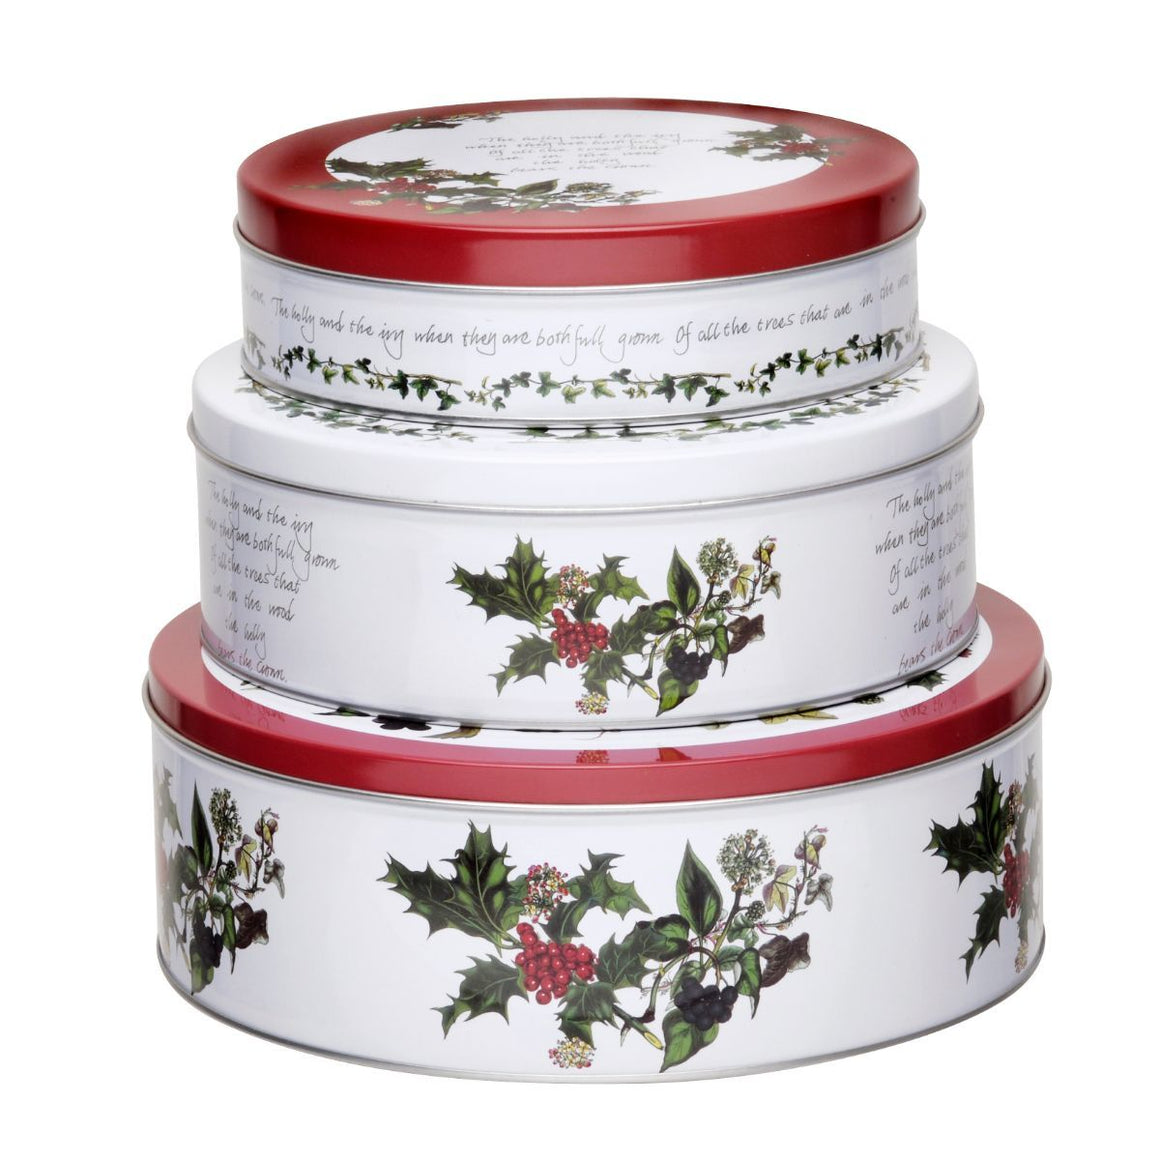 Holly Cardianl Nesting Tins, Set of 3